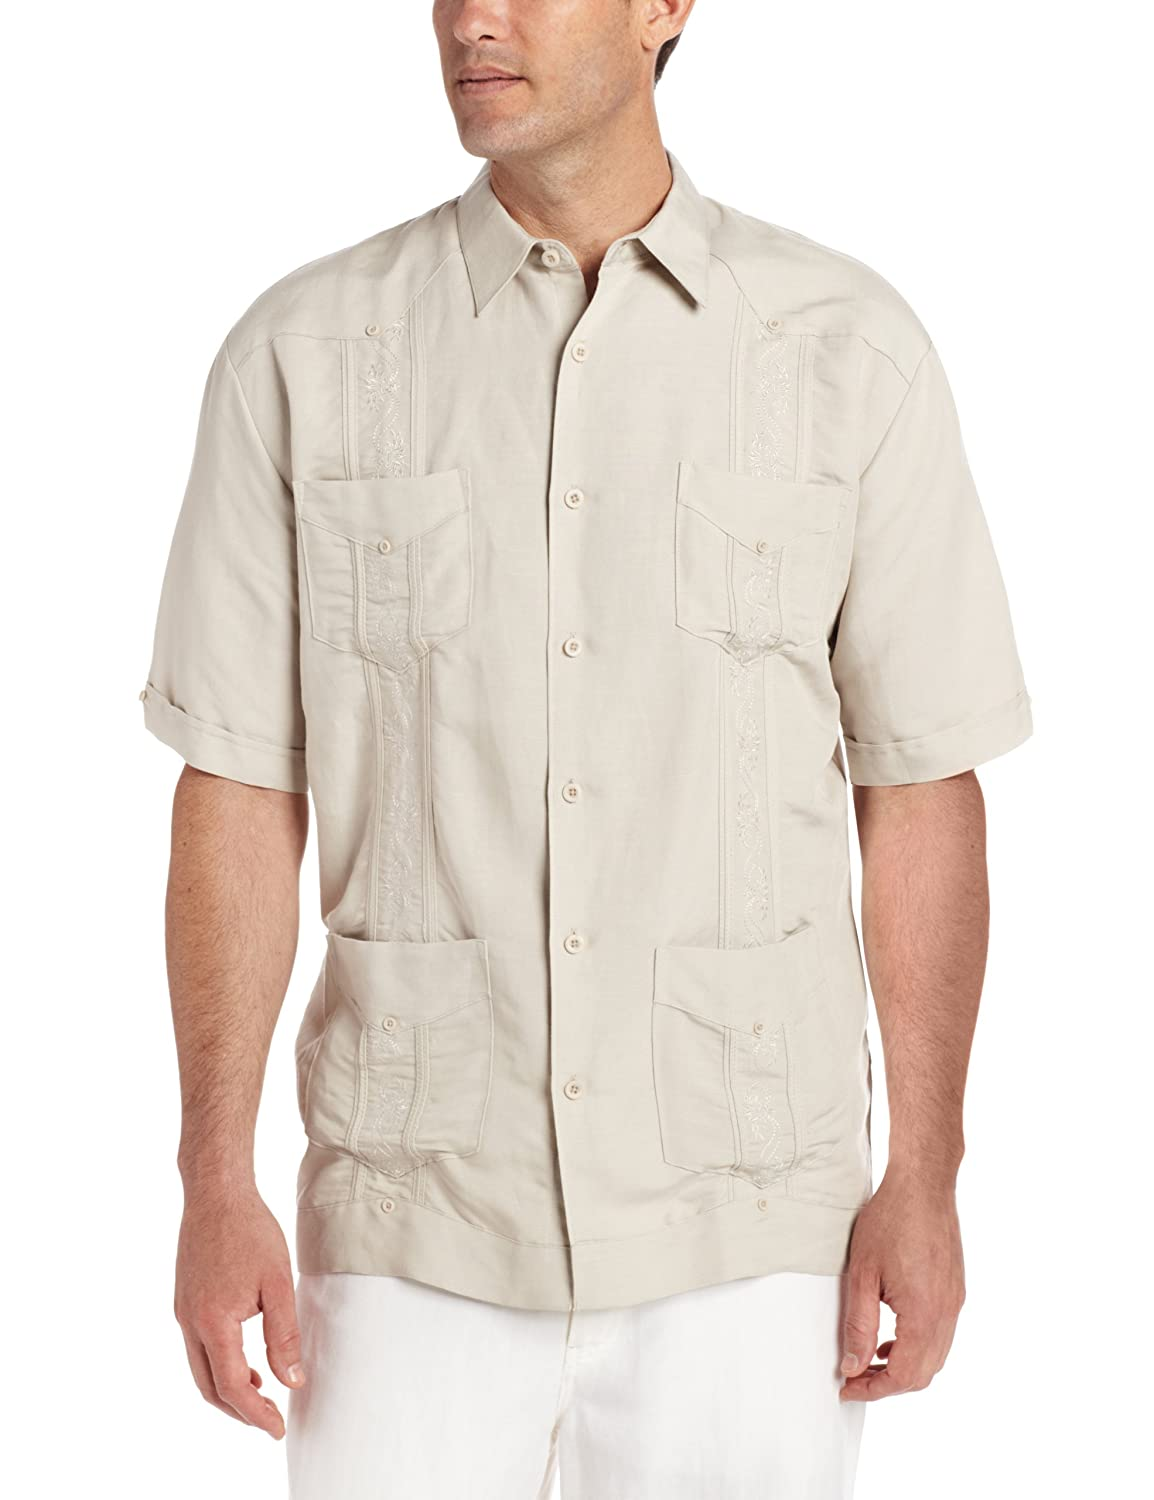 1930s Style Mens Shirts Big-Tall Short Sleeve Embroidered Ramie $39.95 AT vintagedancer.com